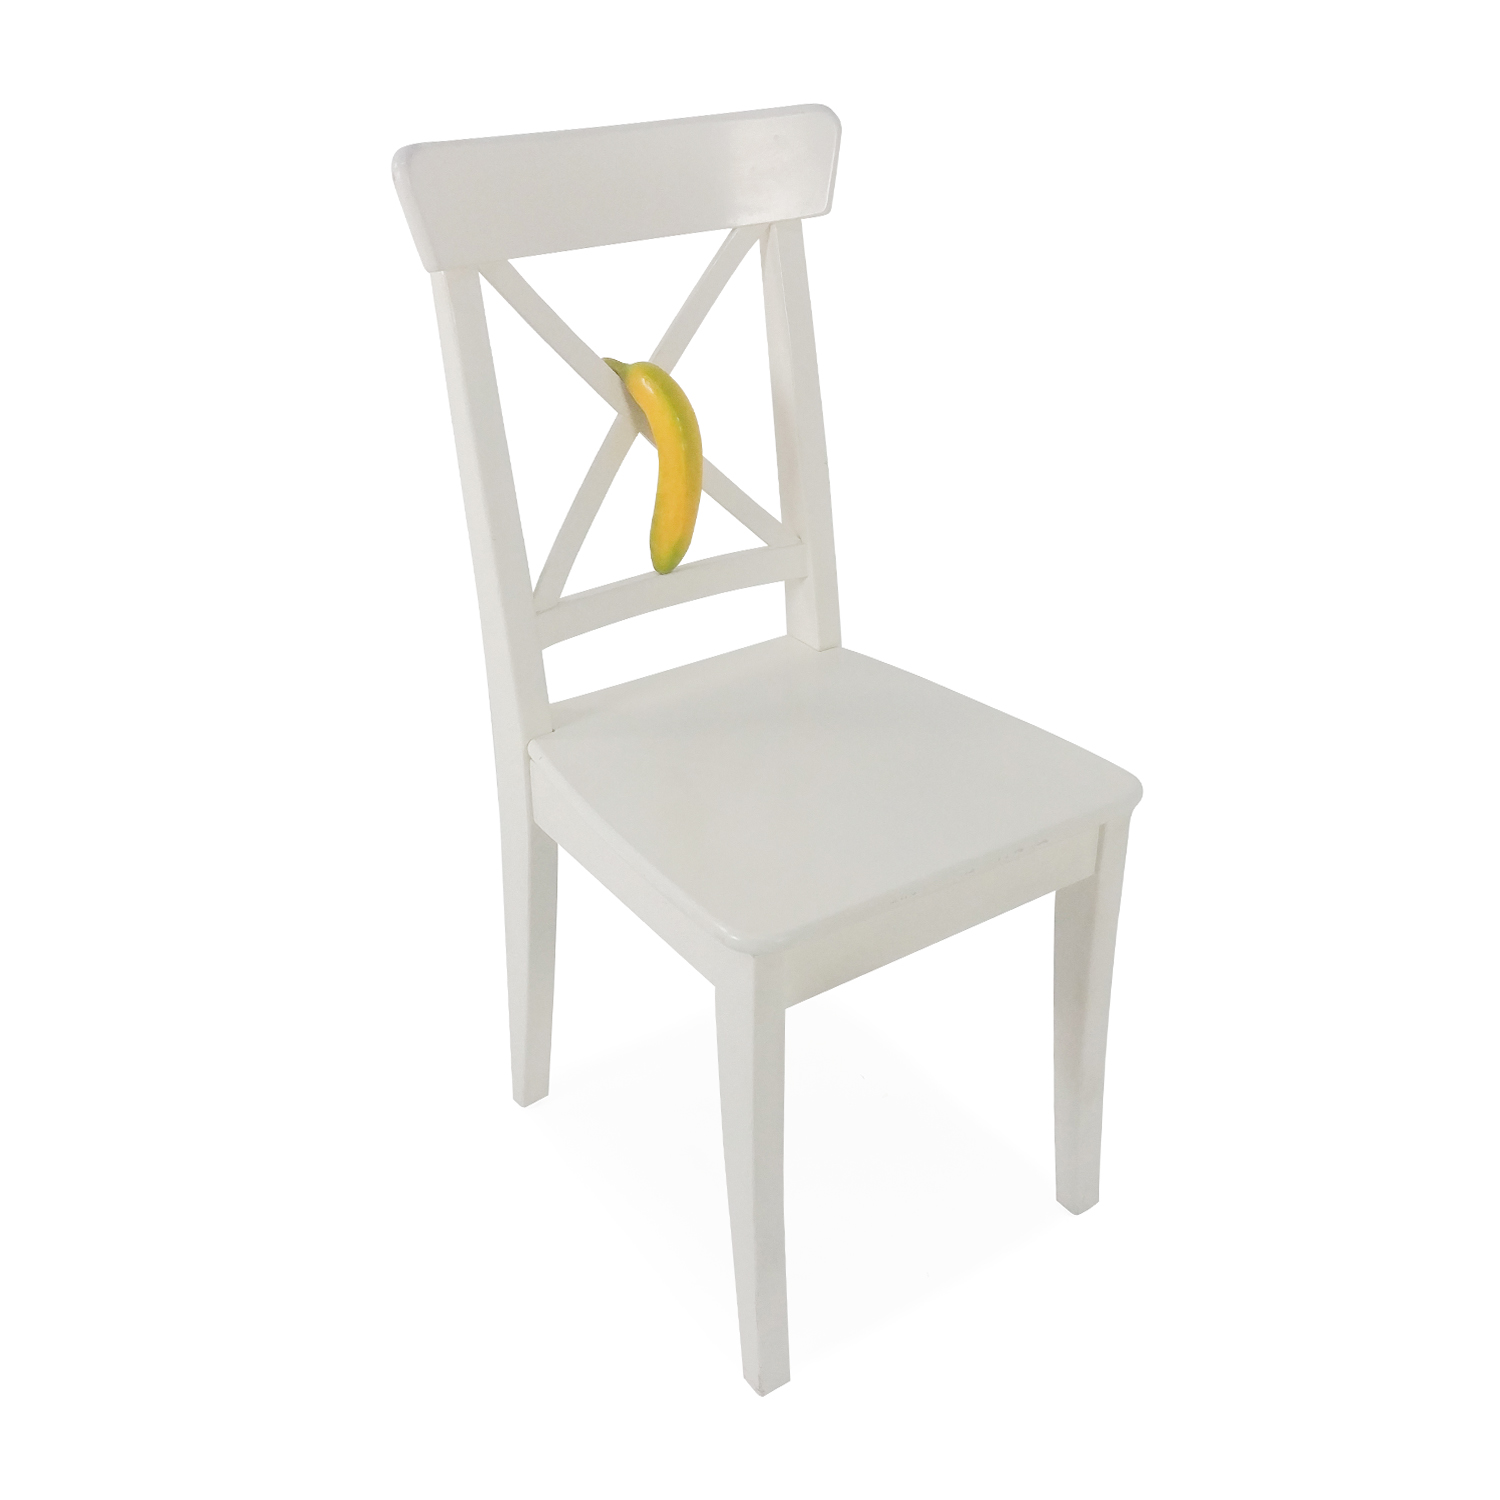 ikea ingolf chair cosco step stool yellow 50 off white dining chairs